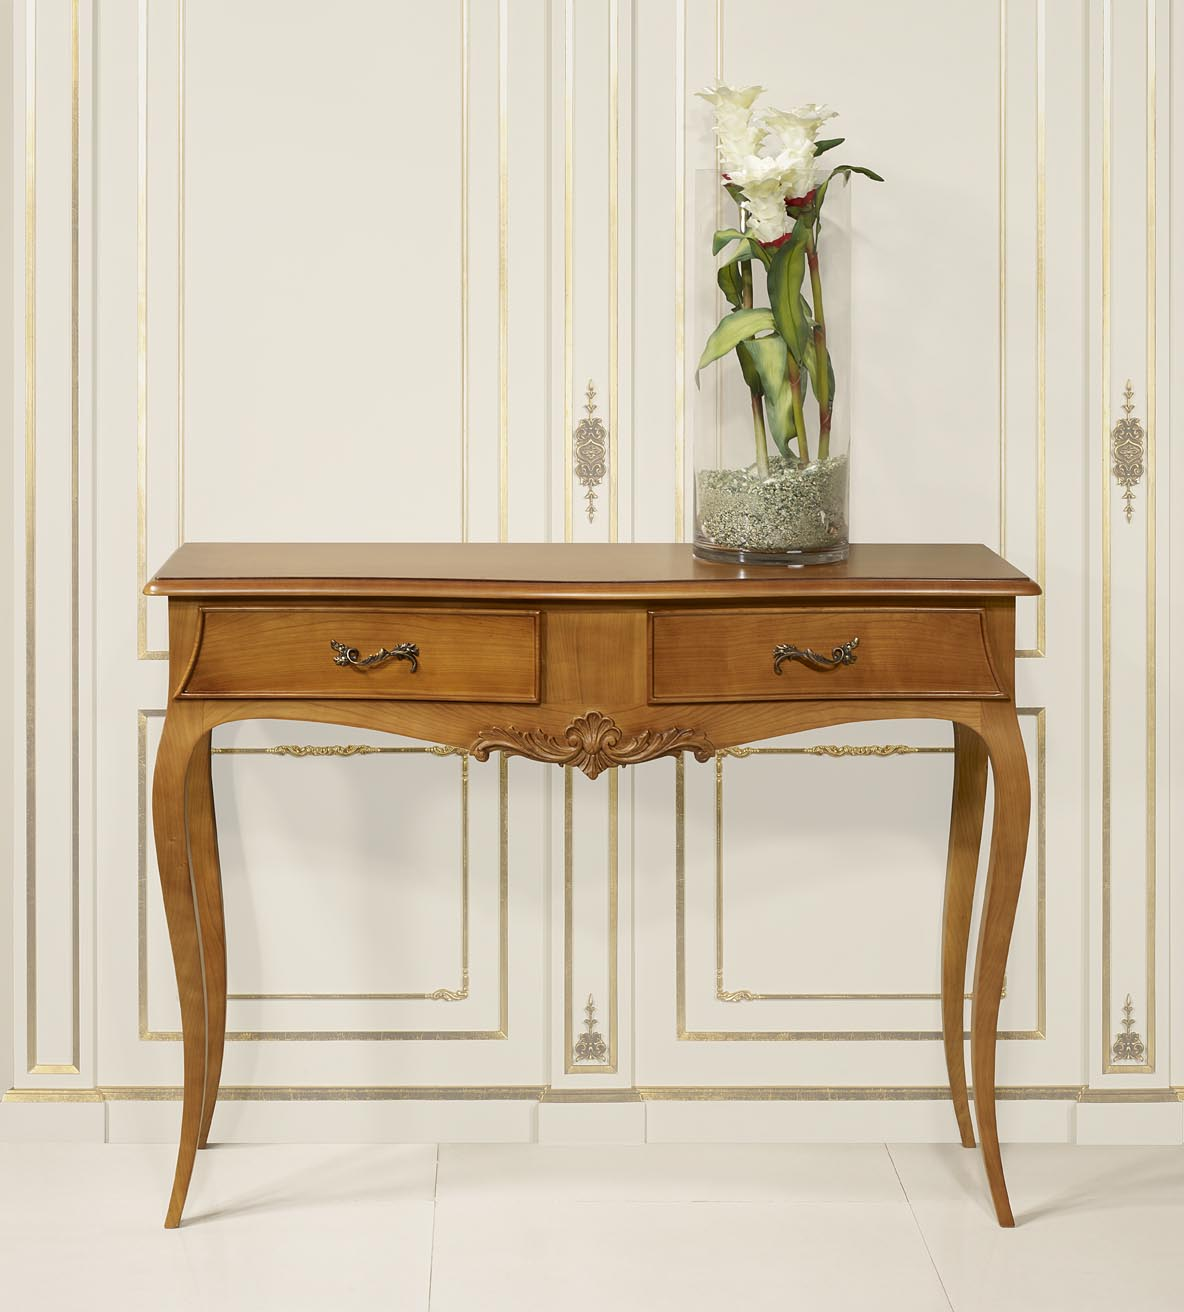 console anne luce en merisier de style louis xv meuble en merisier massif. Black Bedroom Furniture Sets. Home Design Ideas